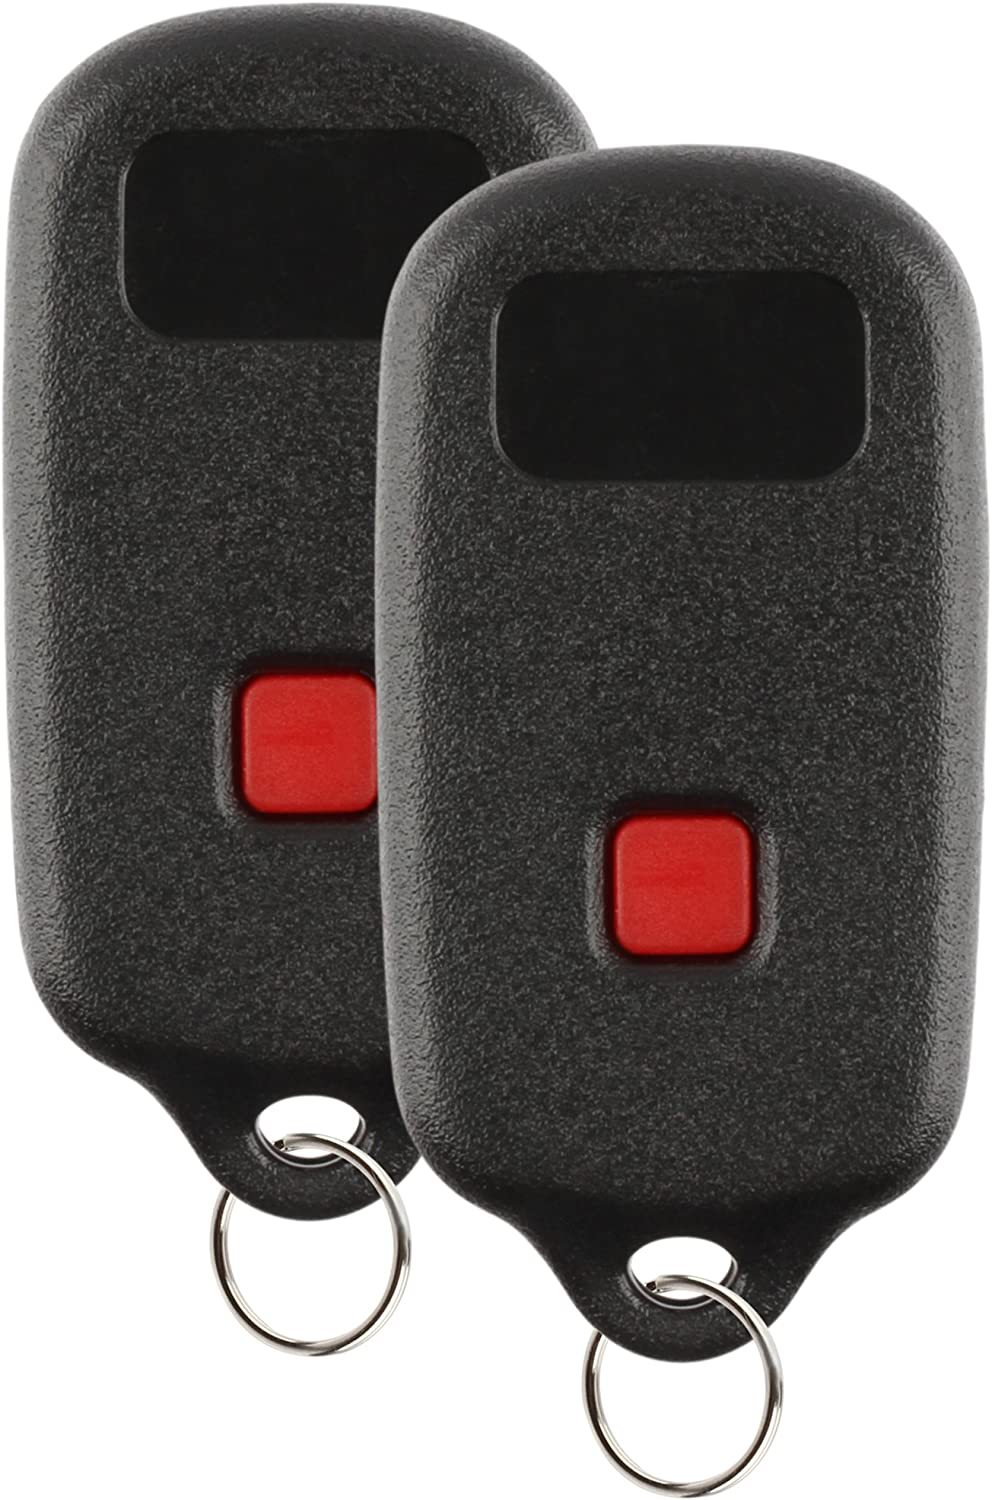 HYQ12BAN 2 Pack Discount Keyless Replacement Key Fob Car Remote For Toyota 4Runner Sequoia HYQ12BBX HYQ1512Y